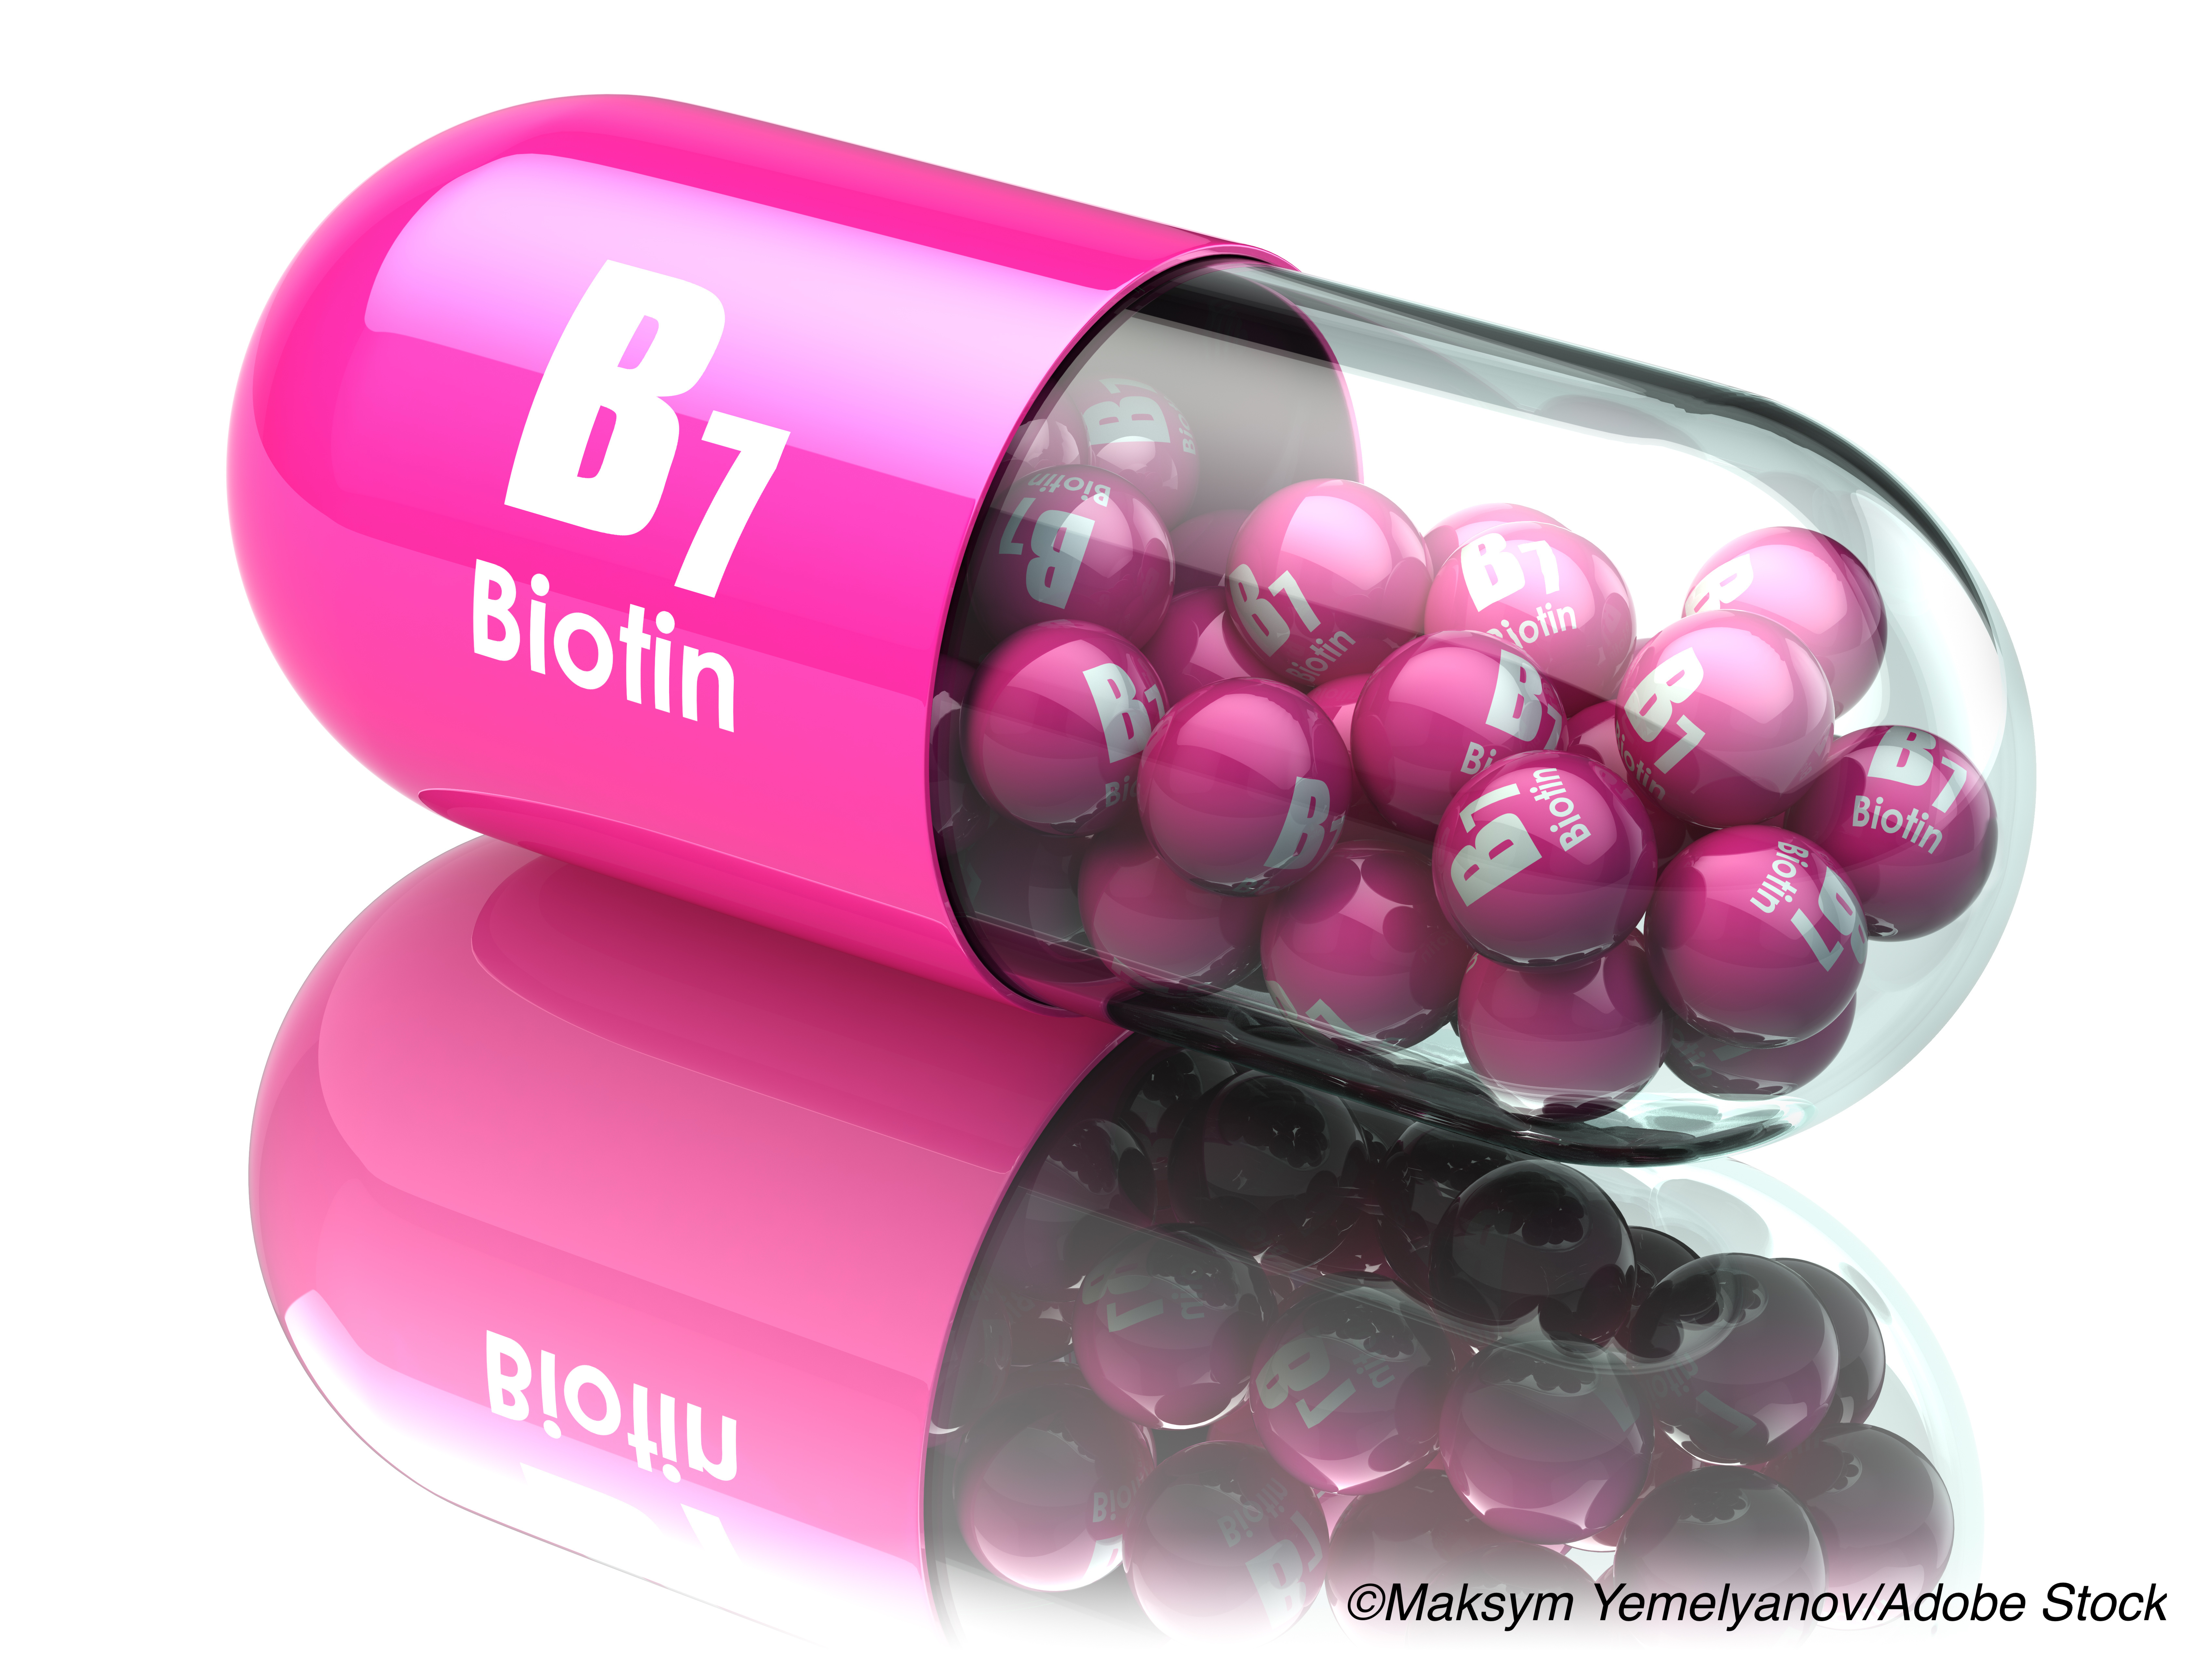 Biotin for Progressive MS Disappoints in Phase III SPI2 Trial